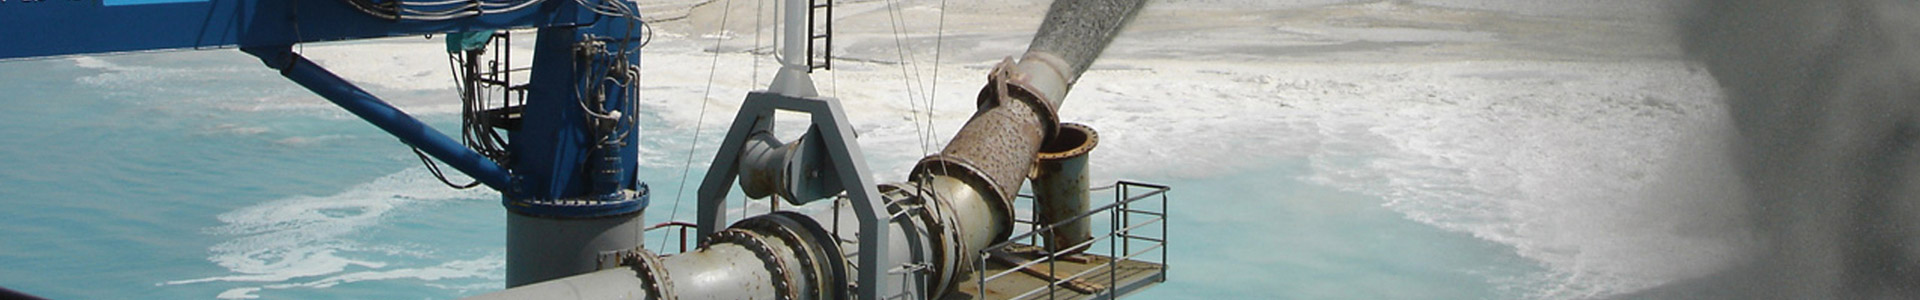 Marine Dredge Pumps